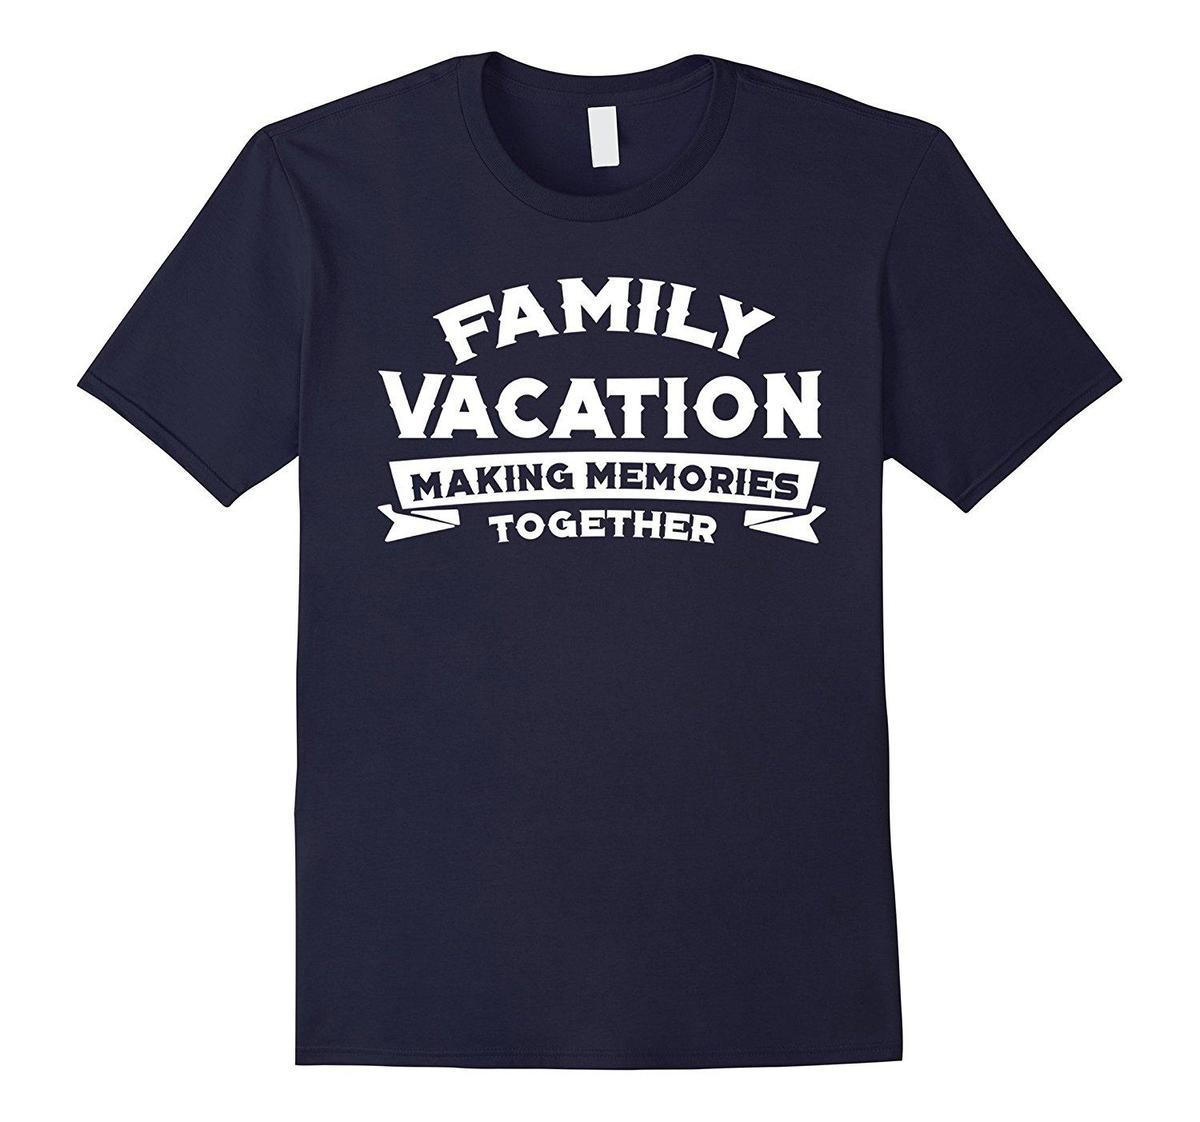 d4643105 Family Vacation Making Memories Together Road Trip T Shirts T Shirt Funny  Funny T Shirt Designs From Liguo002, $15.53| DHgate.Com